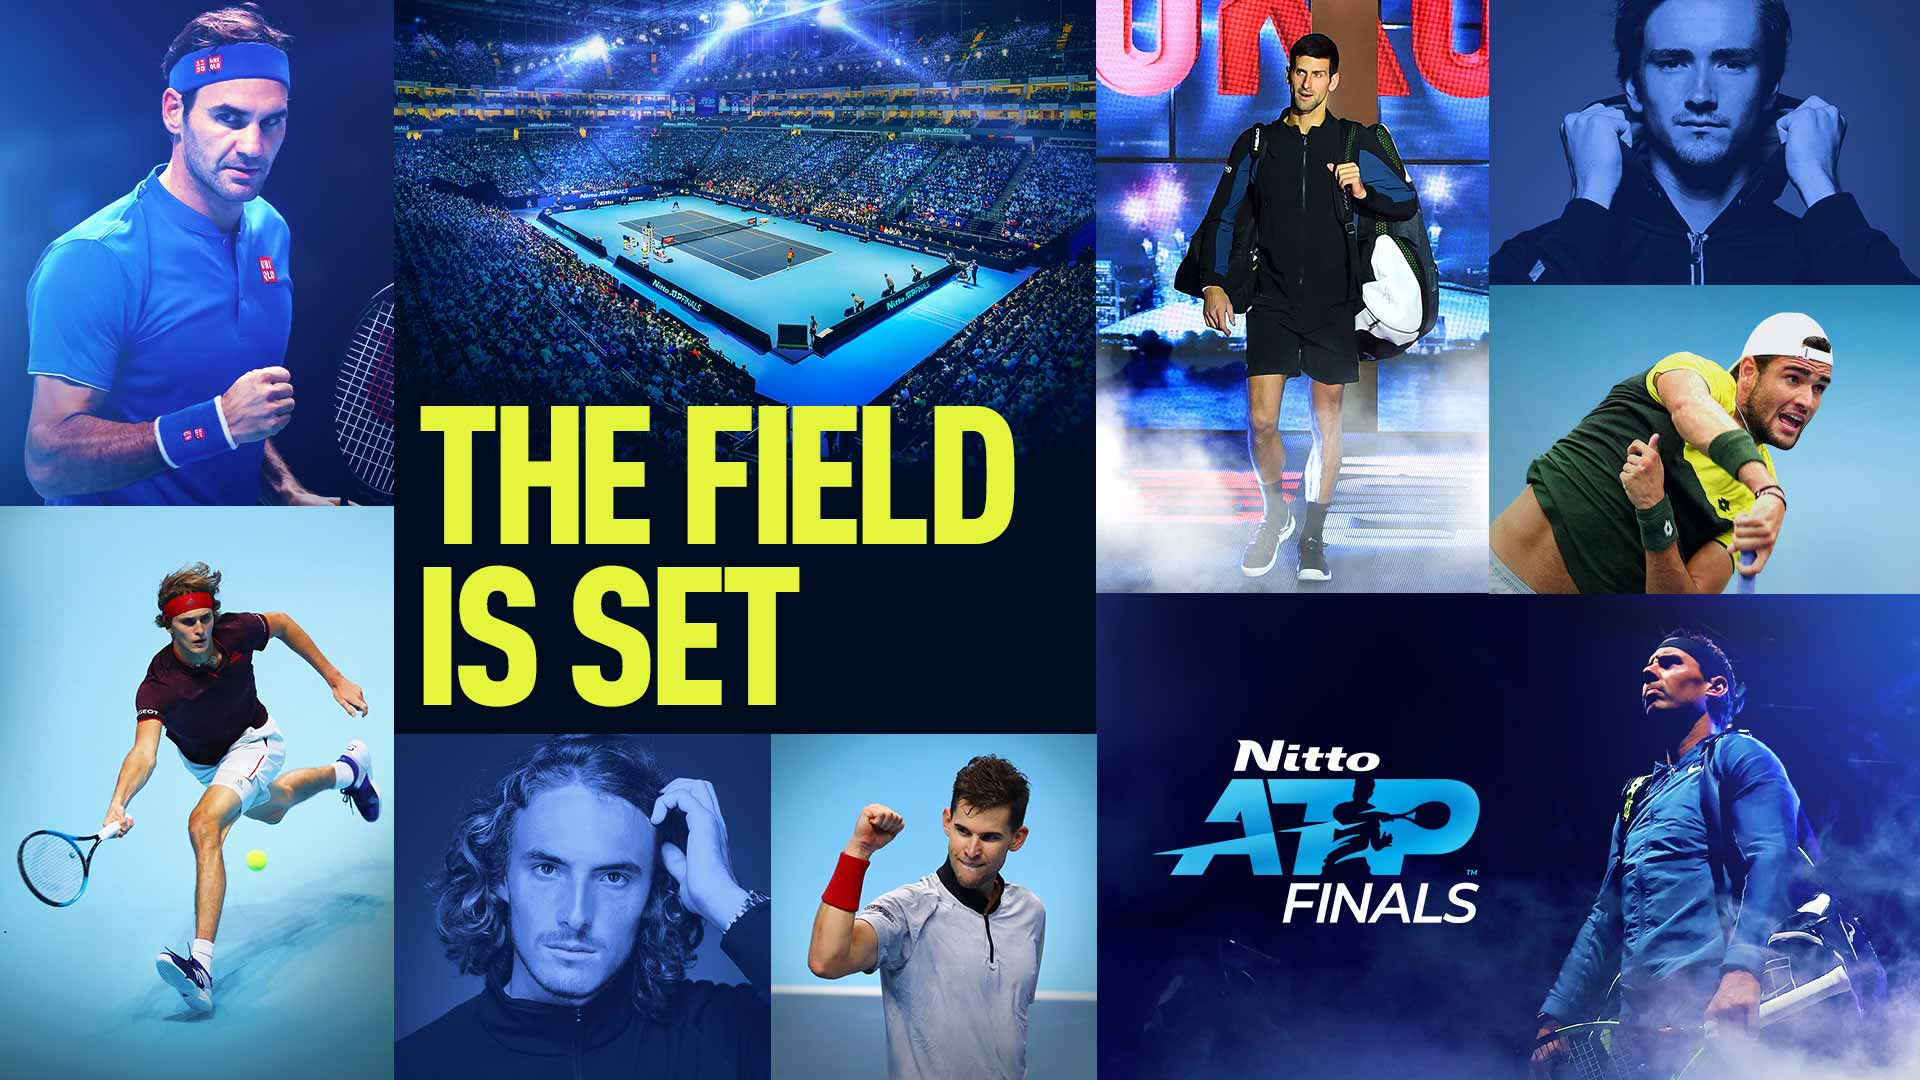 The Field Is Set | <a href='https://www.atptour.com/en/tournaments/nitto-atp-finals/605/overview'>Nitto ATP Finals</a>